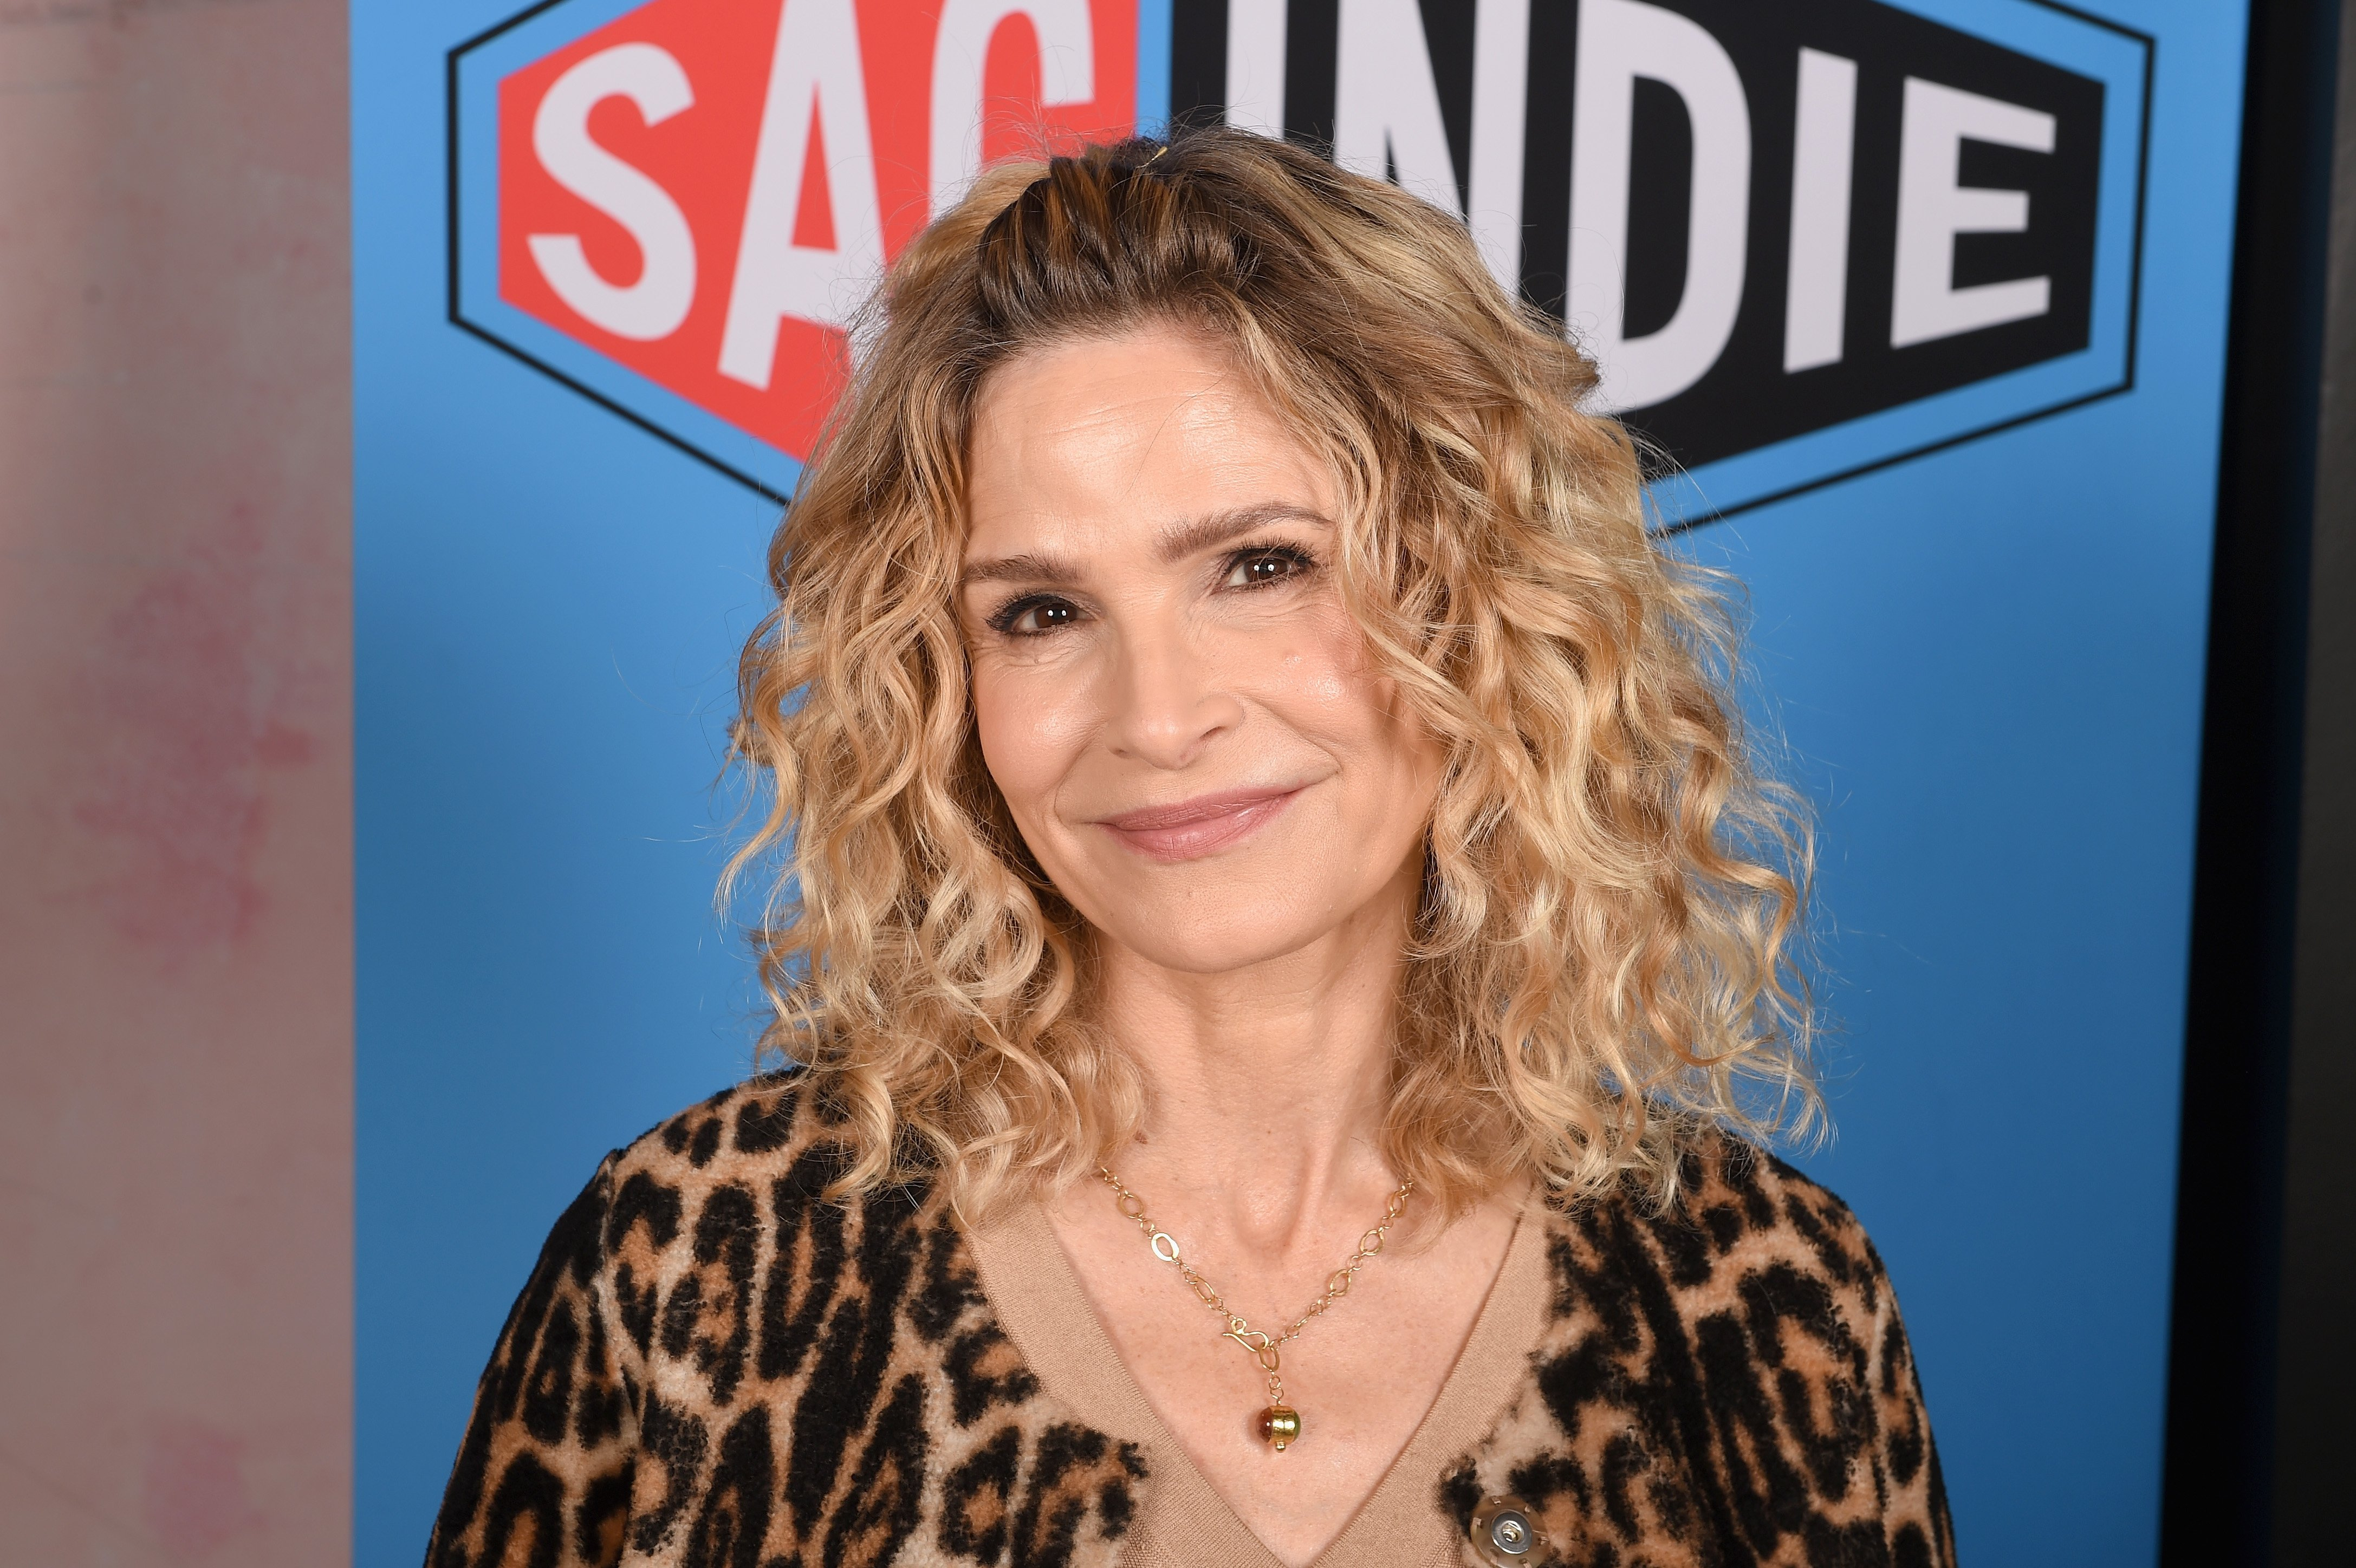 Kyra Sedgwick attends the SAGindie Sundance Filmmakers Reception at Cafe Terigo on January 28, 2019 | Photo: GettyImages